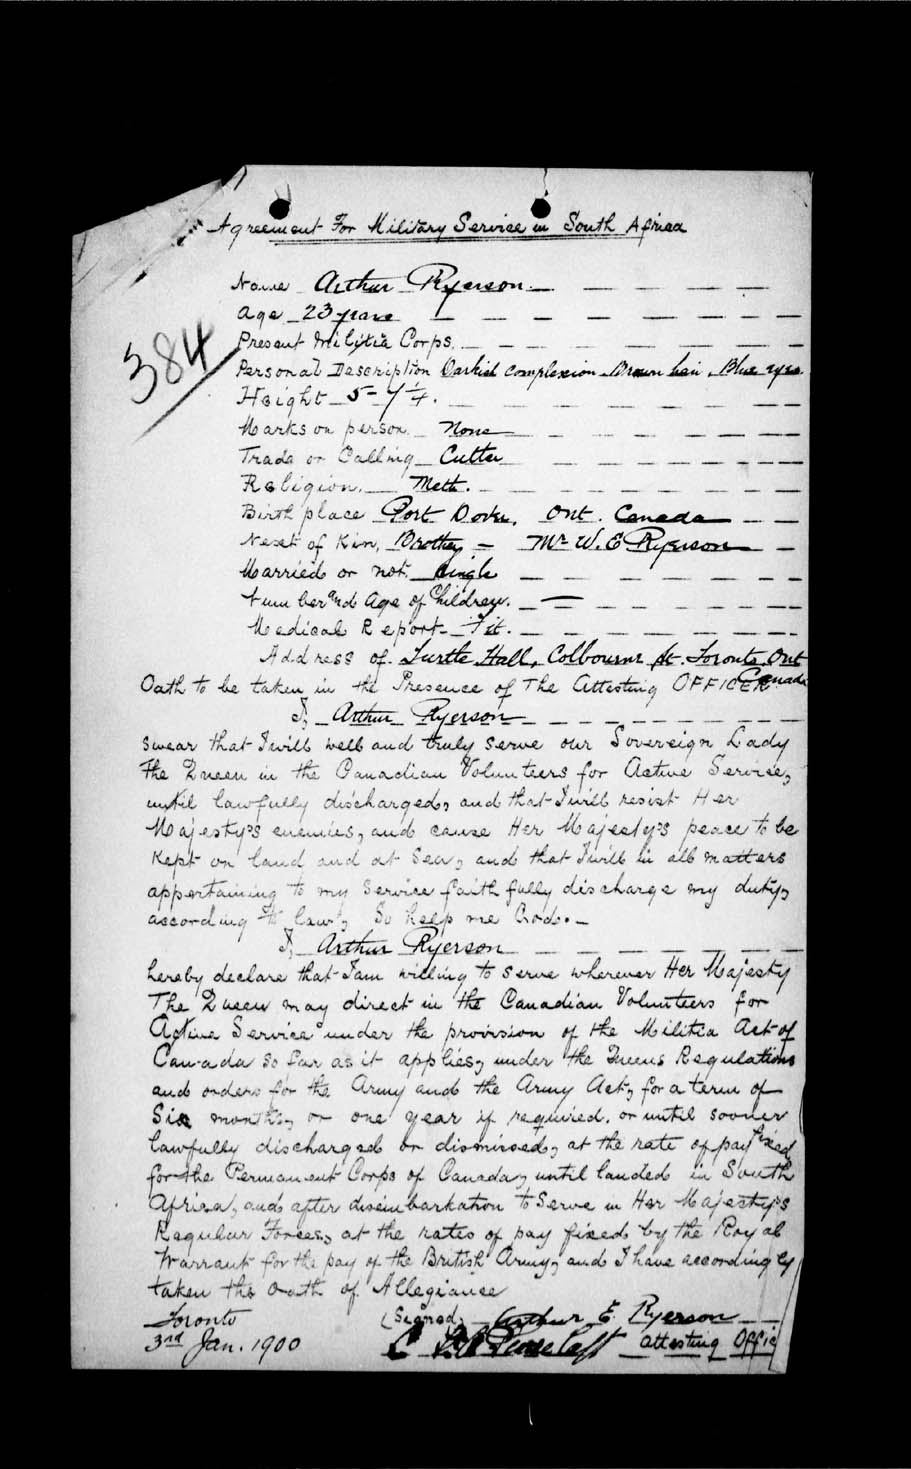 Digitized page of Boer War for Image No.: e002199331